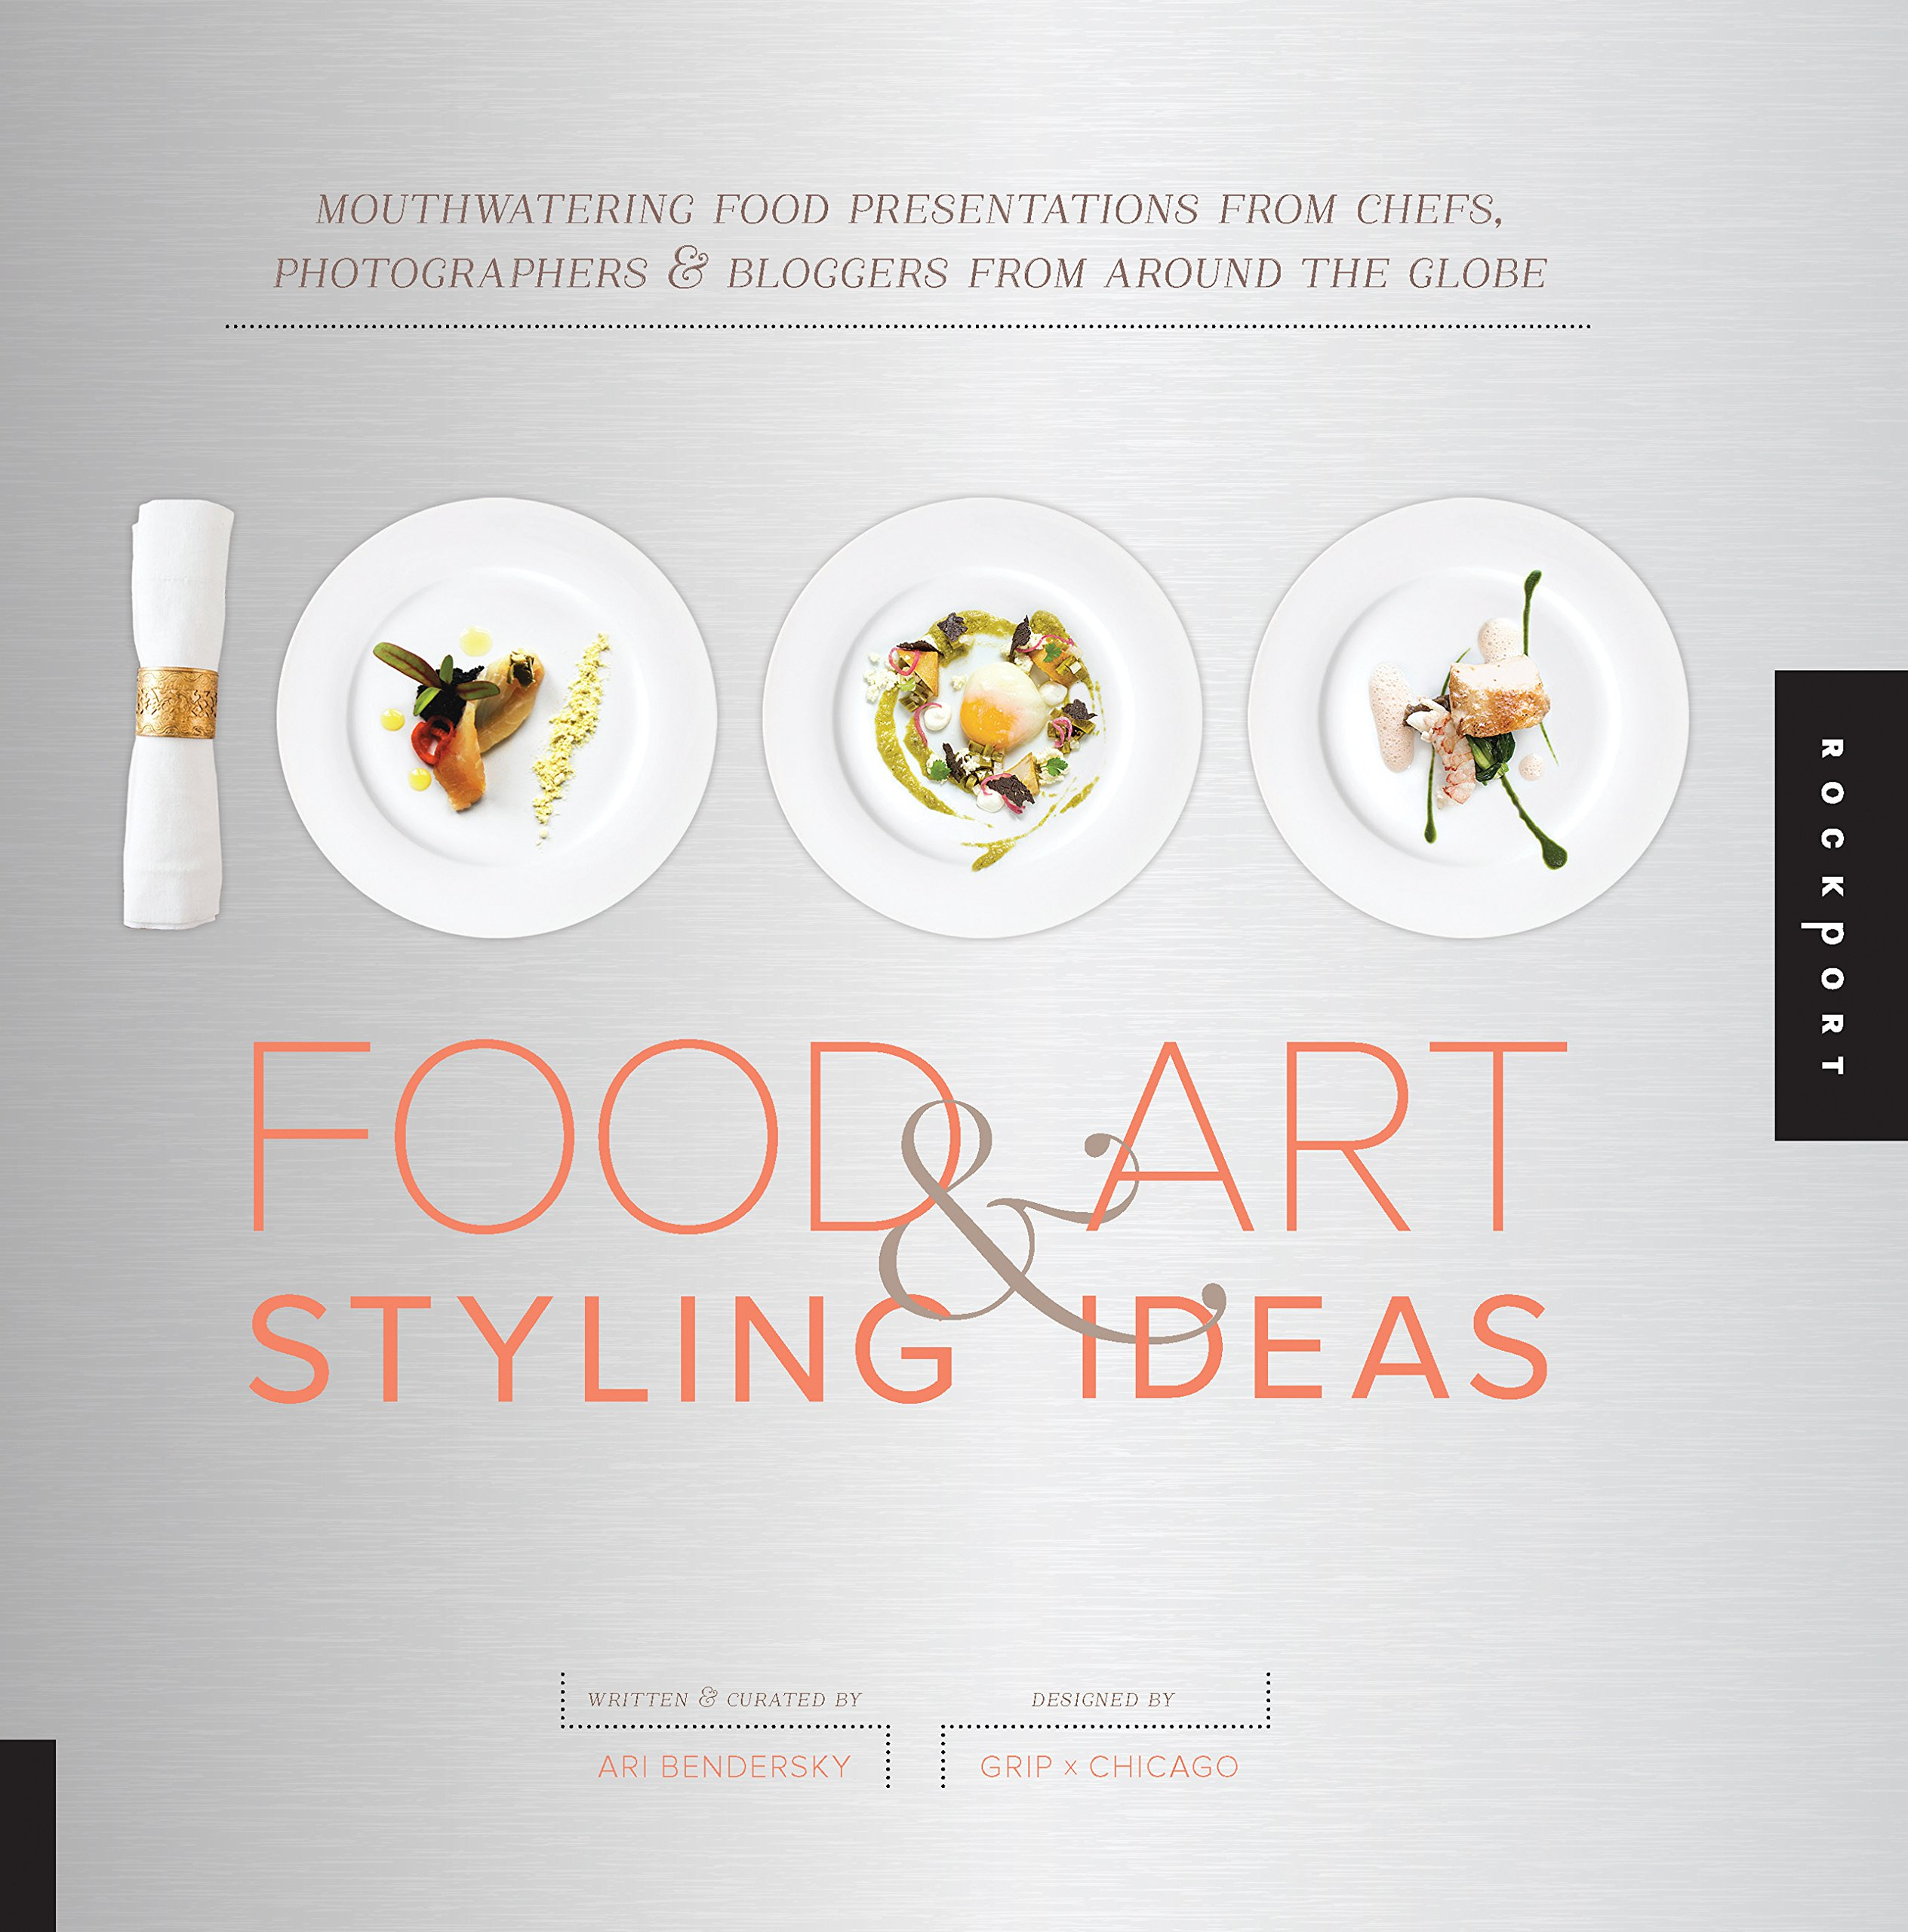 Amazon.com: 1,000 Food Art and Styling Ideas: Mouthwatering Food  Presentations from Chefs, Photographers, and Bloggers from Around the Globe  (1000 Series) ...